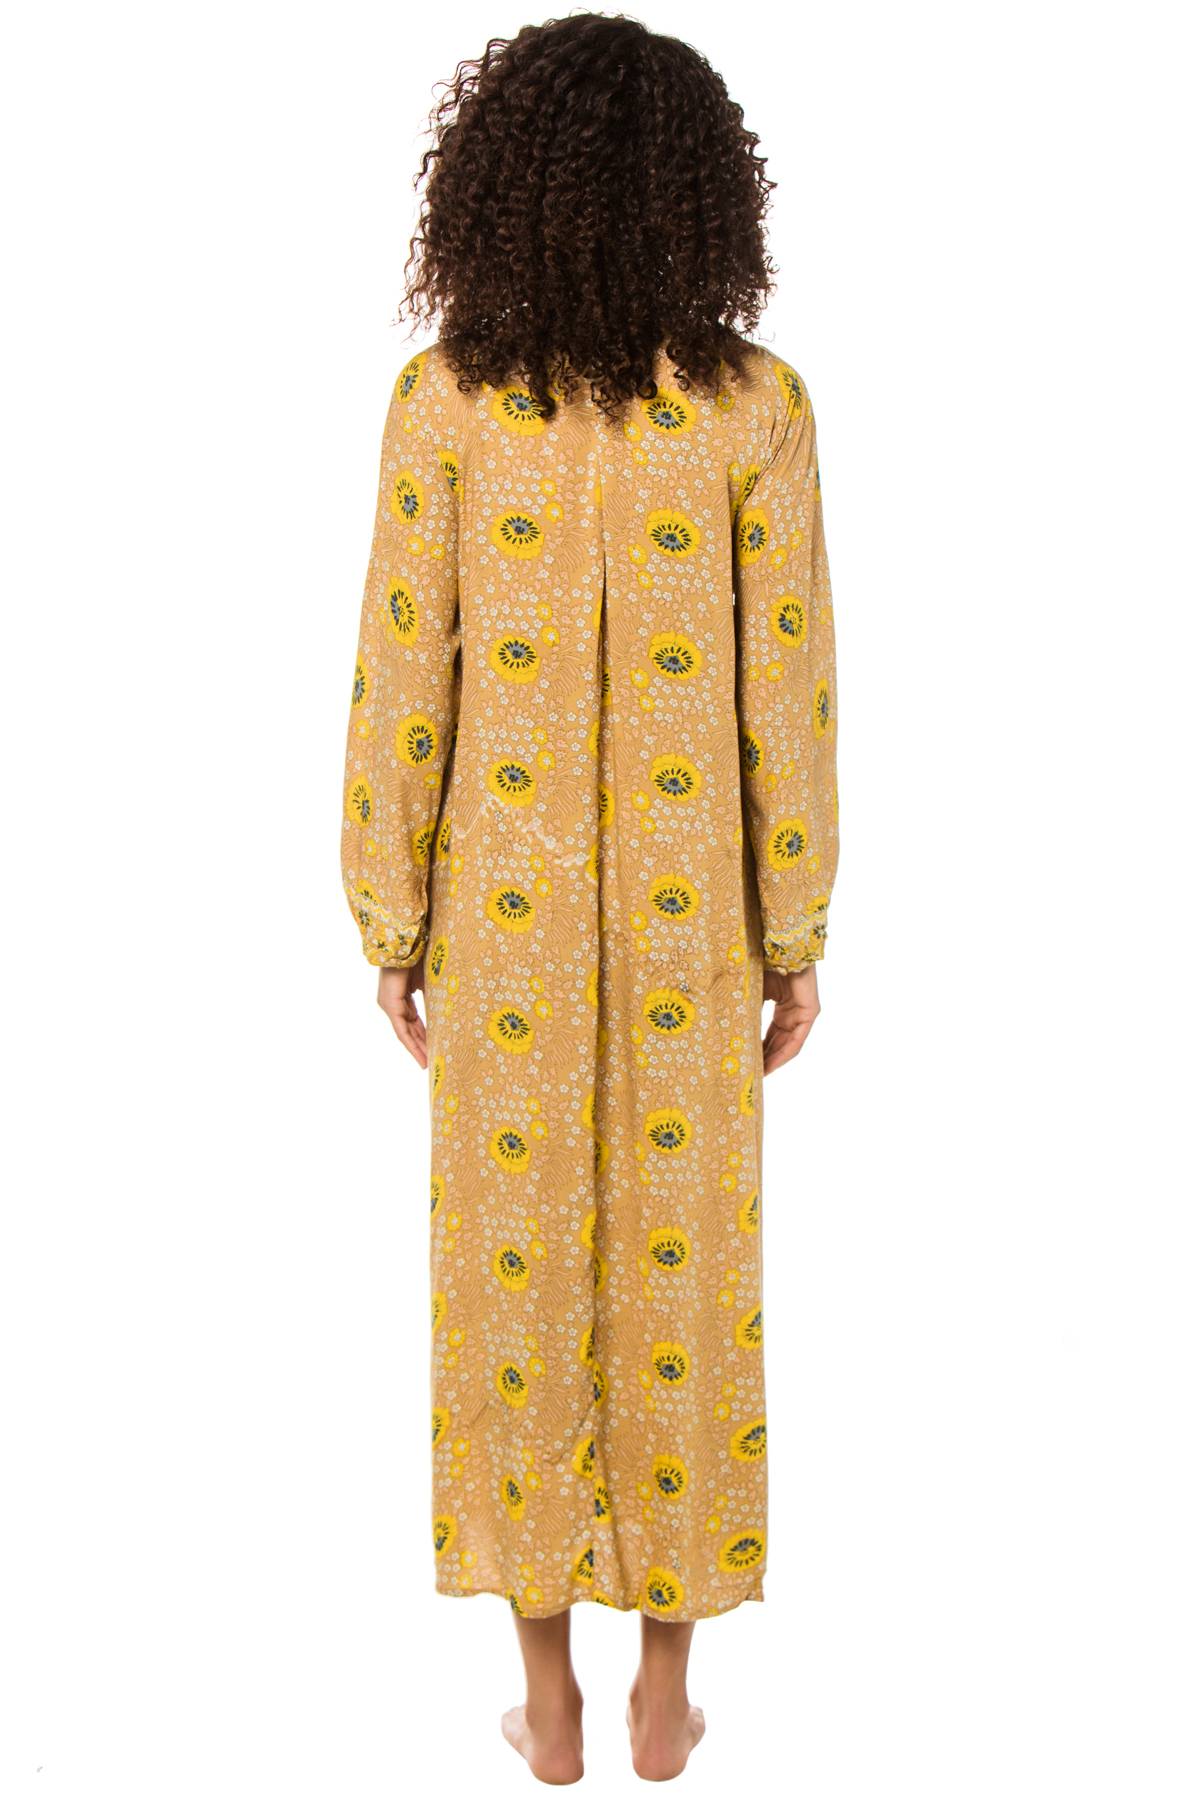 Fiore Long Sleeve Maxi Dress - Vintage Flowers Gold 2